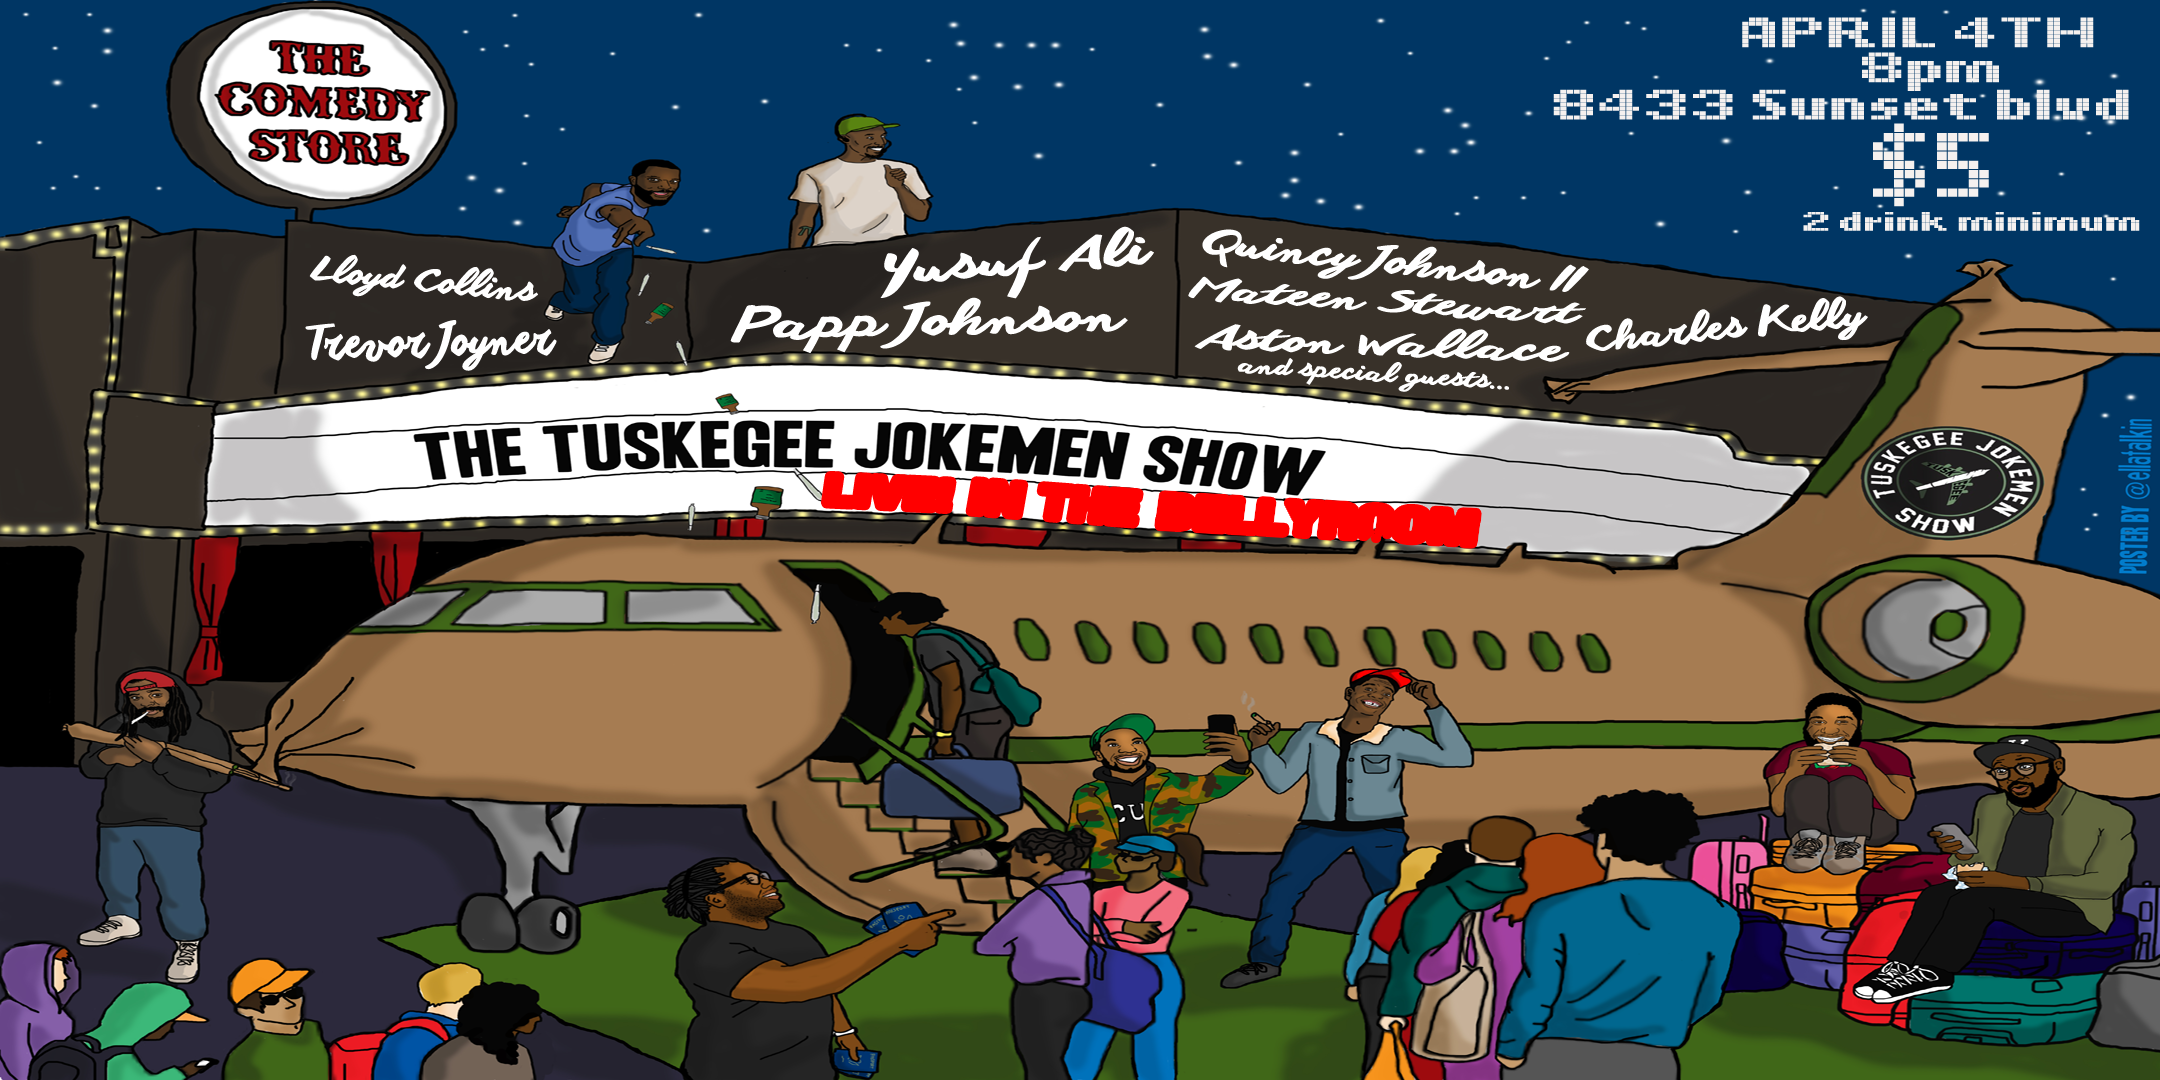 The Tuskegee Jokemen Show